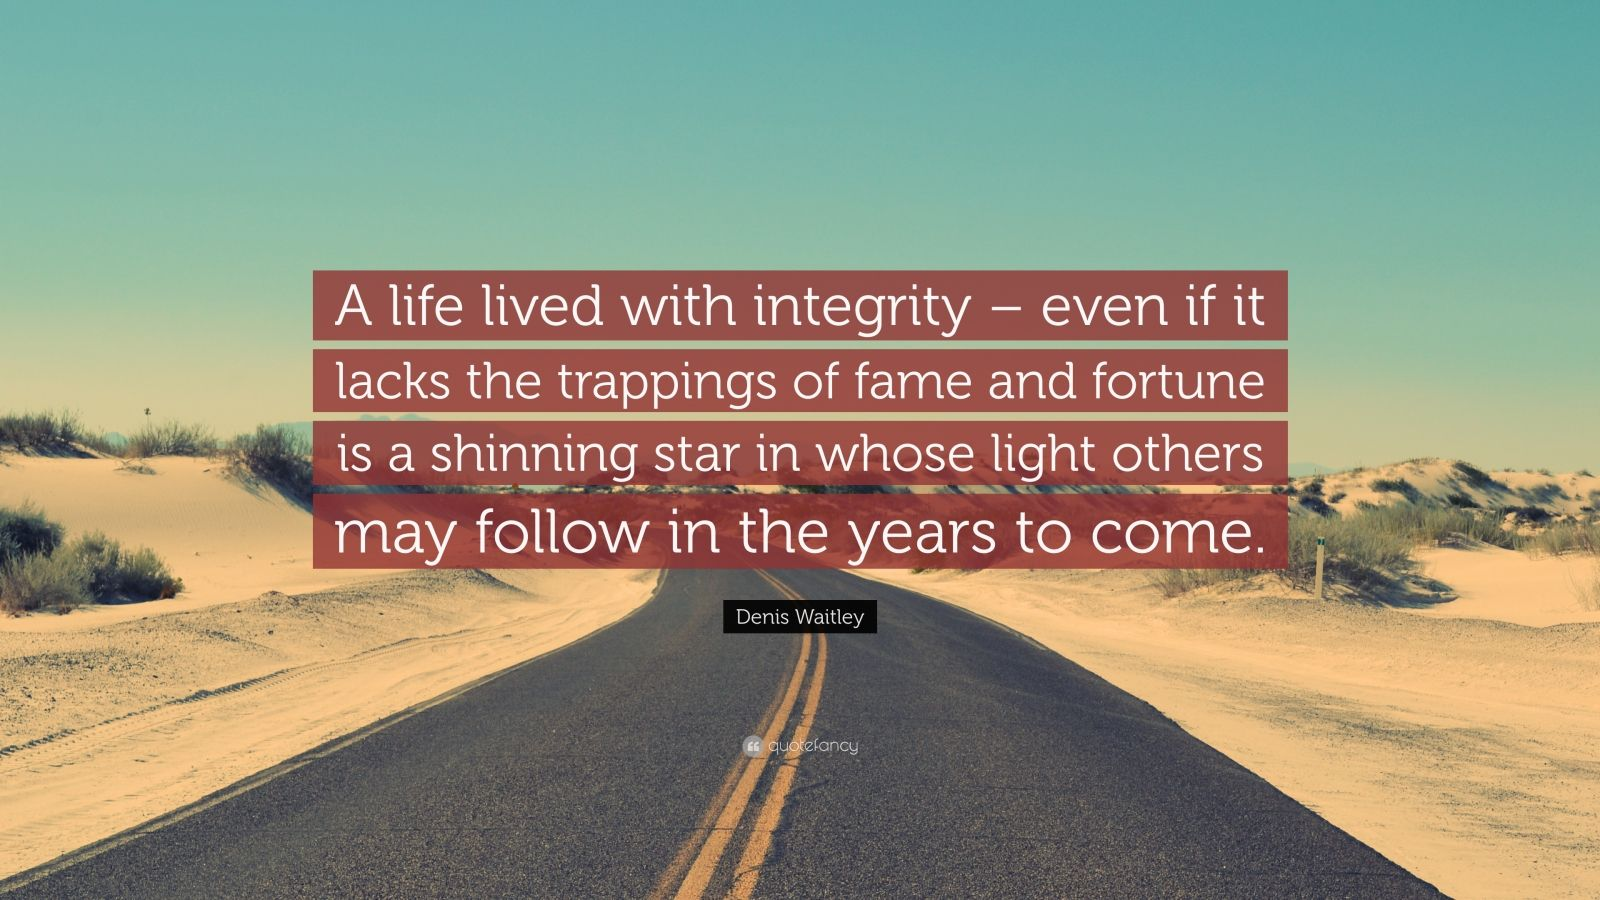 """Denis Waitley Quote: """"A life lived with integrity – even if it lacks the trappings of fame and fortune is a shinning star in whose light others may follow in the years to come."""""""